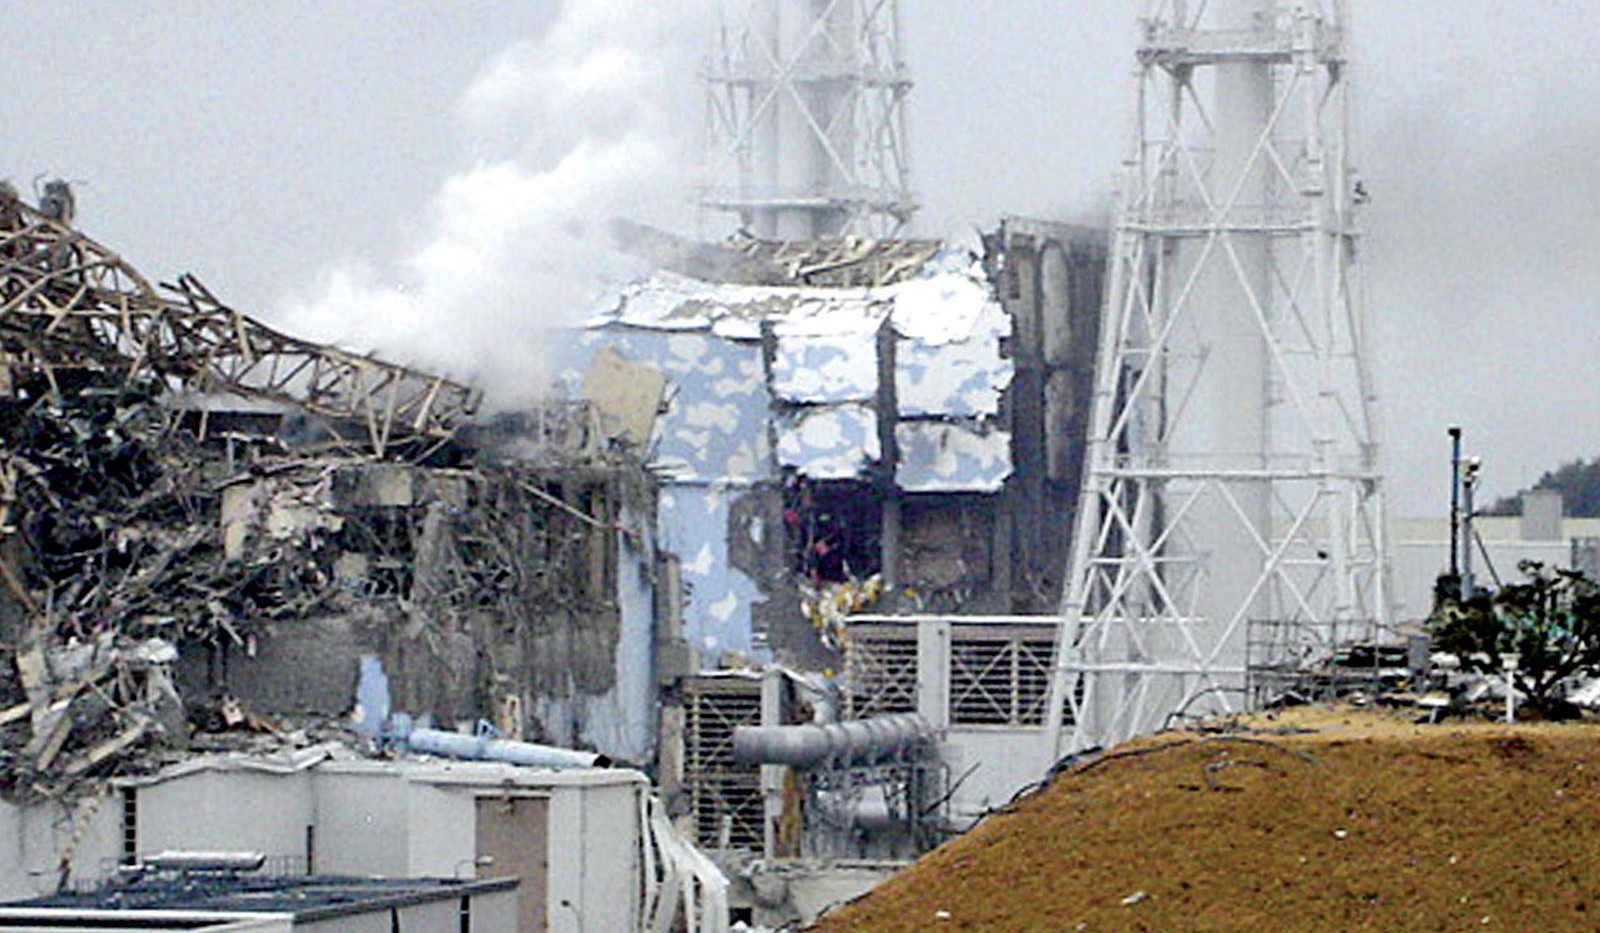 Containment buildings at Fukushima on March 11th, 2011